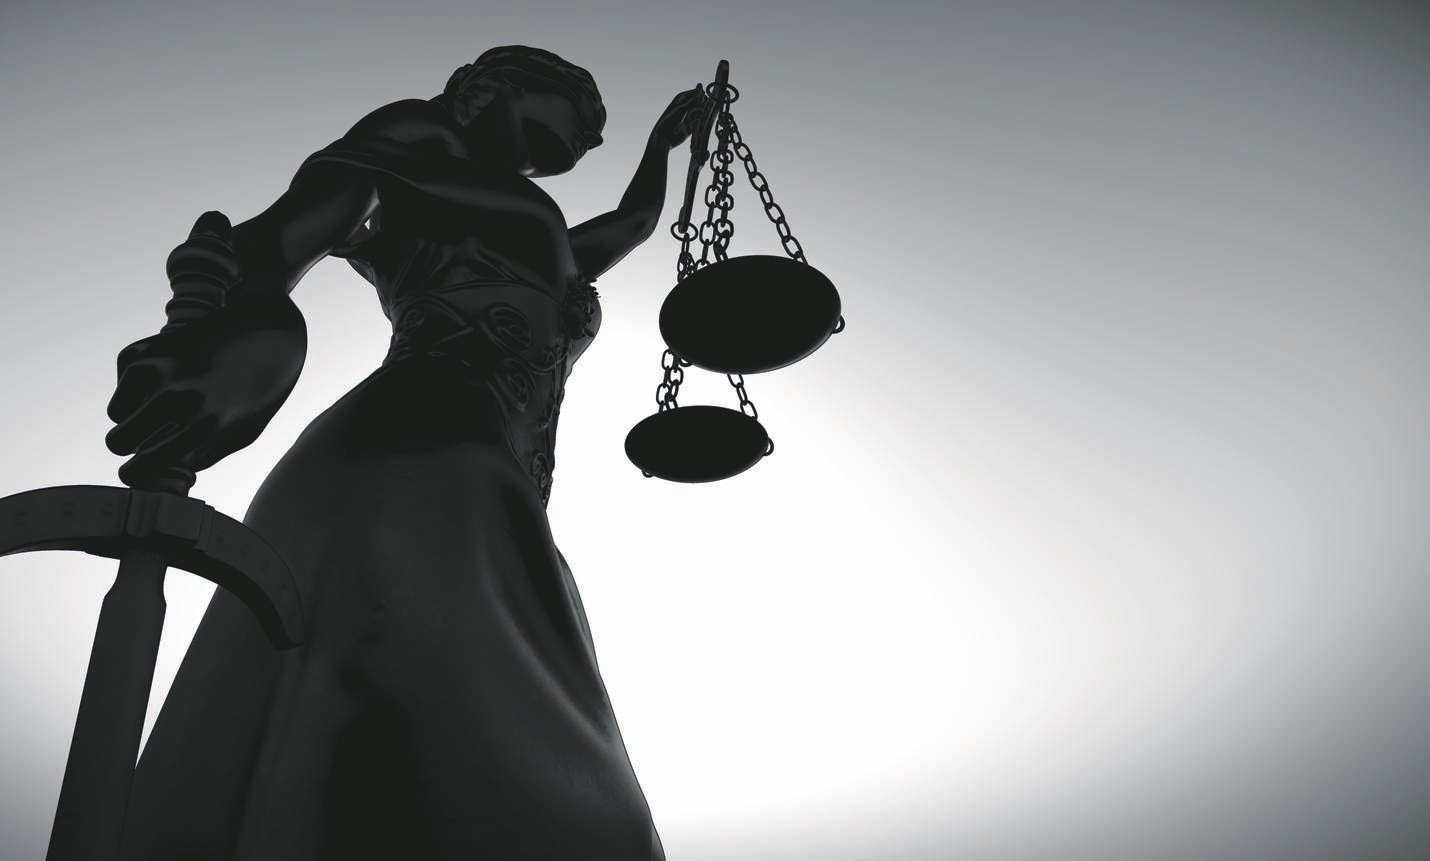 Limpopo prosecutor arrested for allegedly soliciting R6 000 bribe to make case 'disappear' - News24